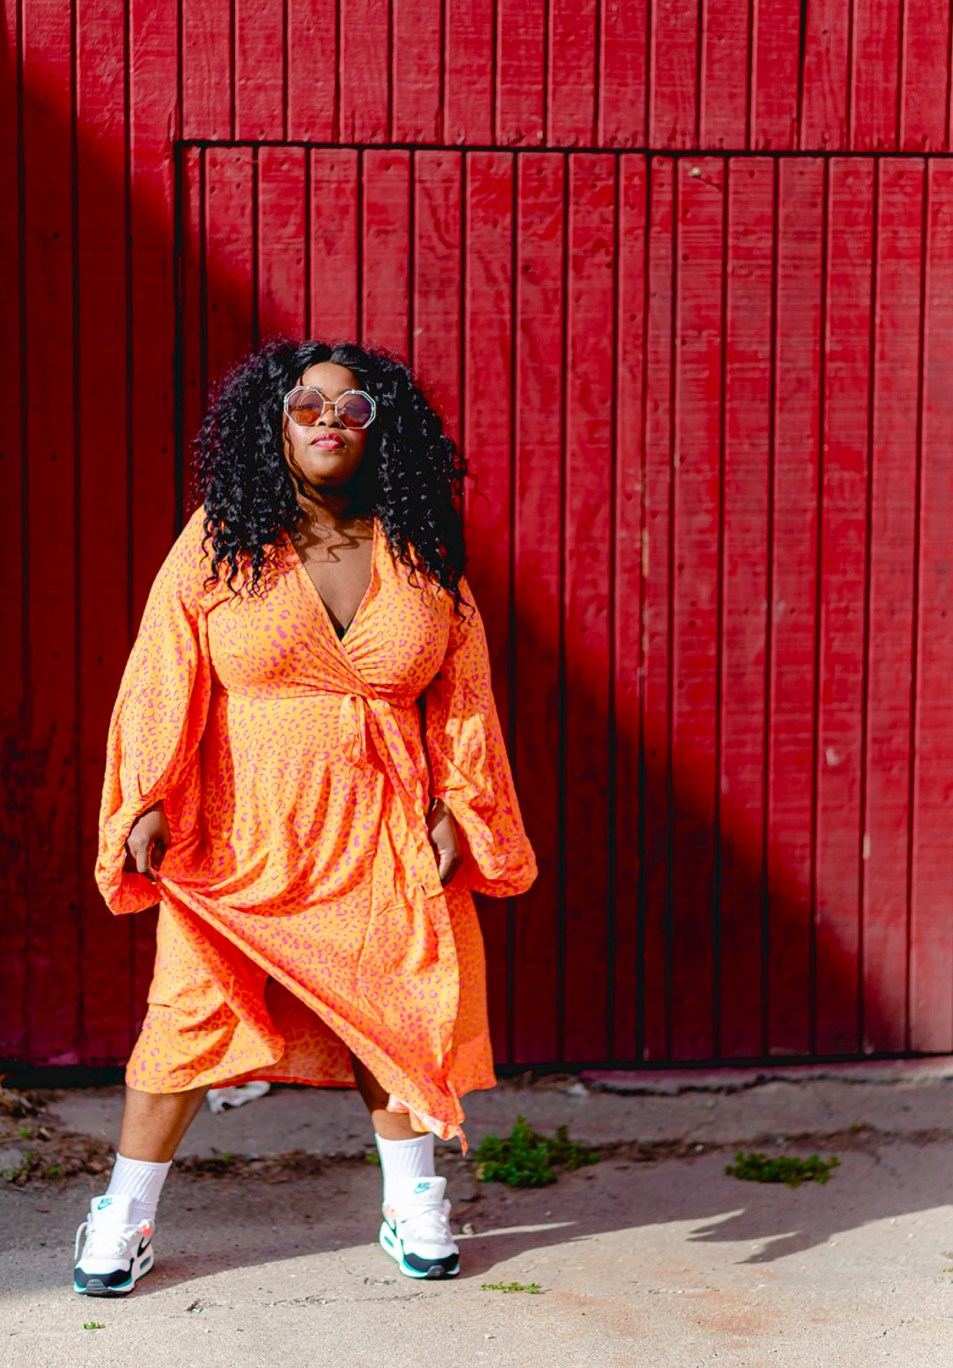 Nike, Plus-Size Streetwear, How To Plus-Size Streetwear: Dresses, Skirts, and Sneakers, thefatgirloffashion